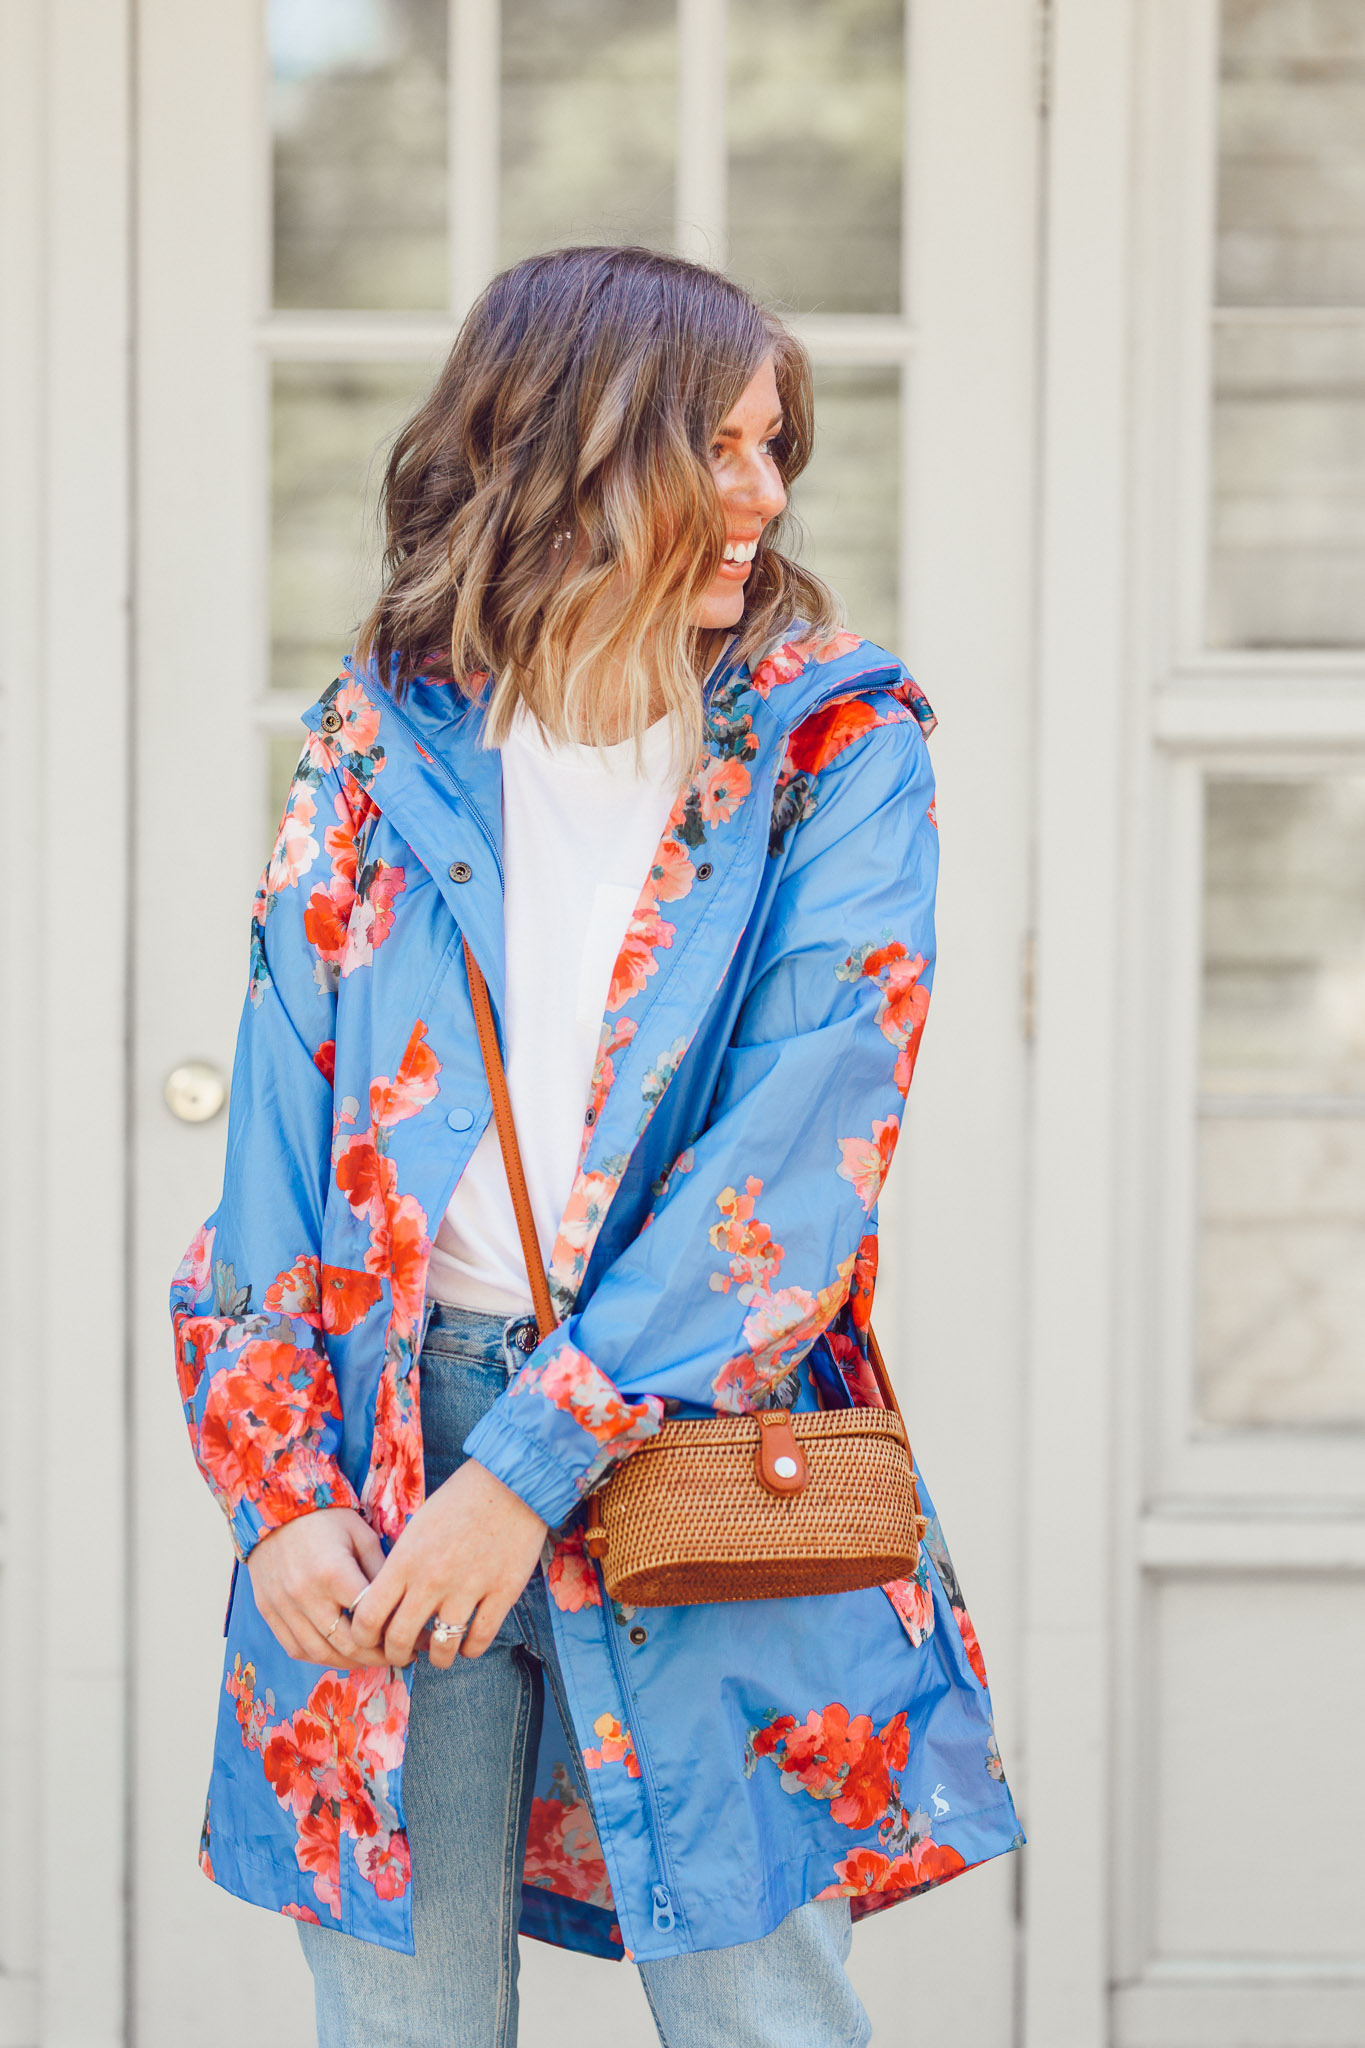 The Cutest Jackets To Prep You For Spring Showers | Louella Reese